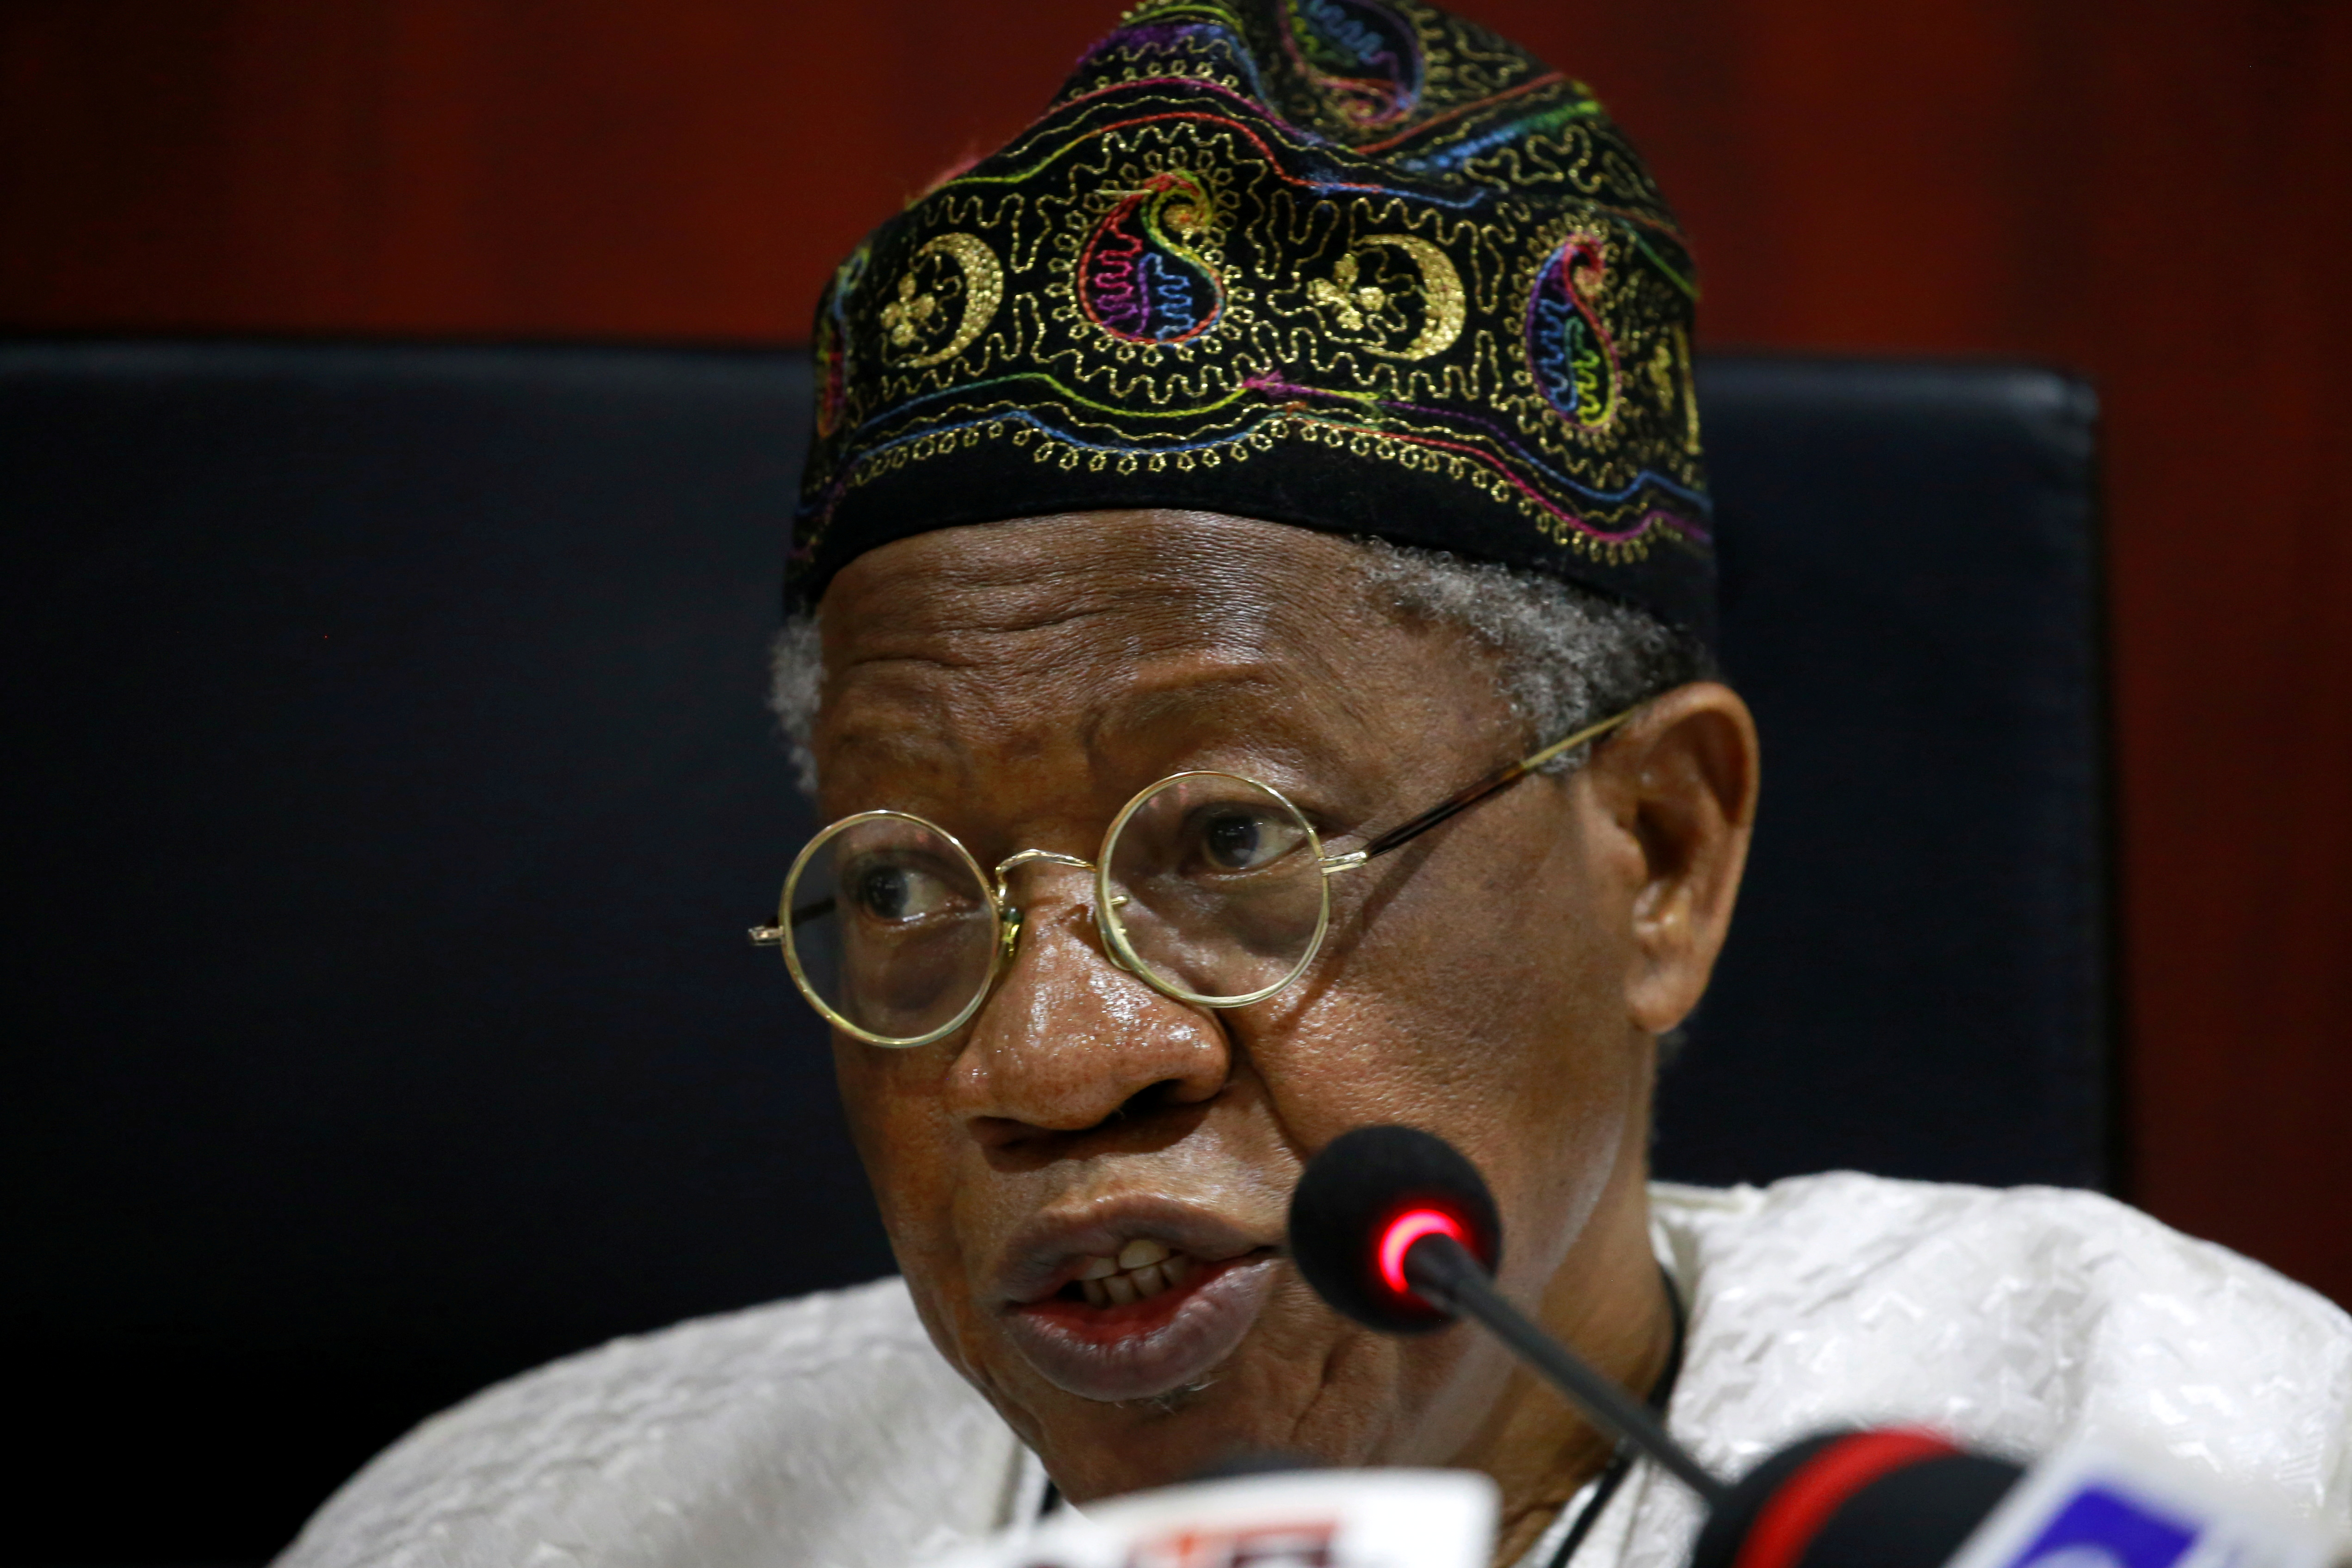 Nigeria's Information Minister Lai Mohammed speaks during a news conference on protests in Abuja, Nigeria November 19, 2020. REUTERS/Afolabi Sotunde/File Photo